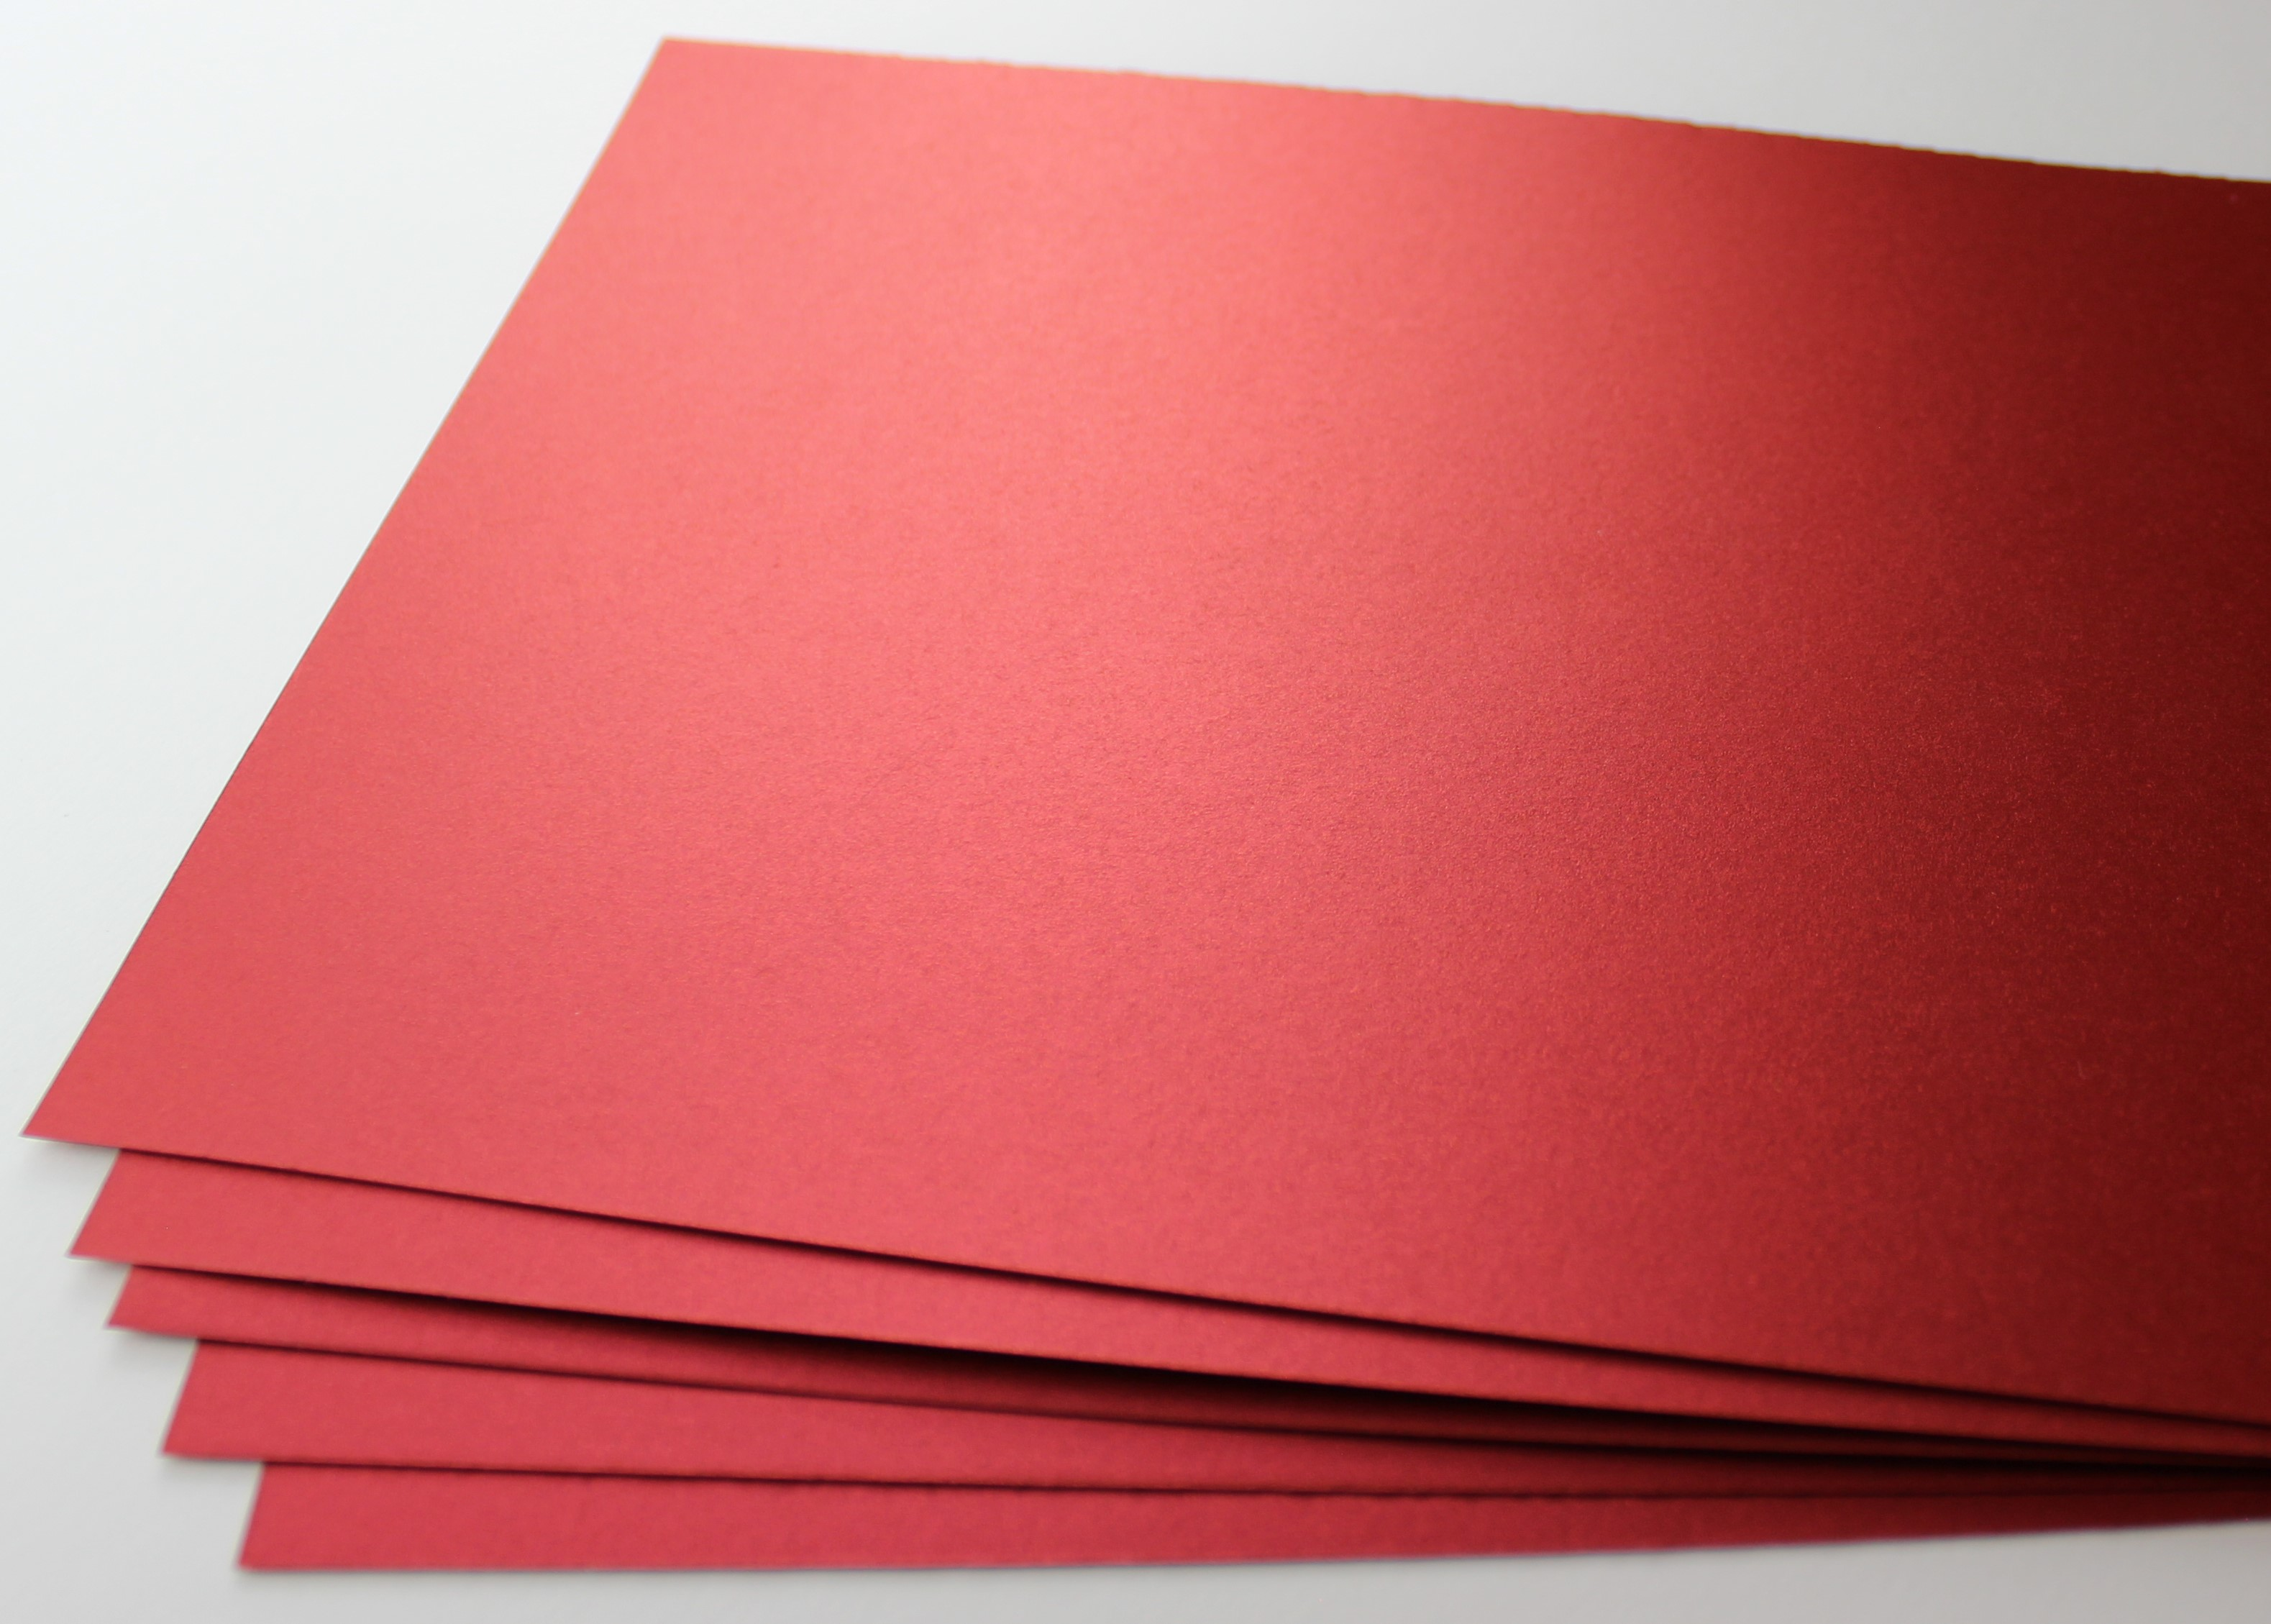 100 Blatt A5 (148 x 210 mm) Inapa Shyne Papier 120 g/qm red diamond